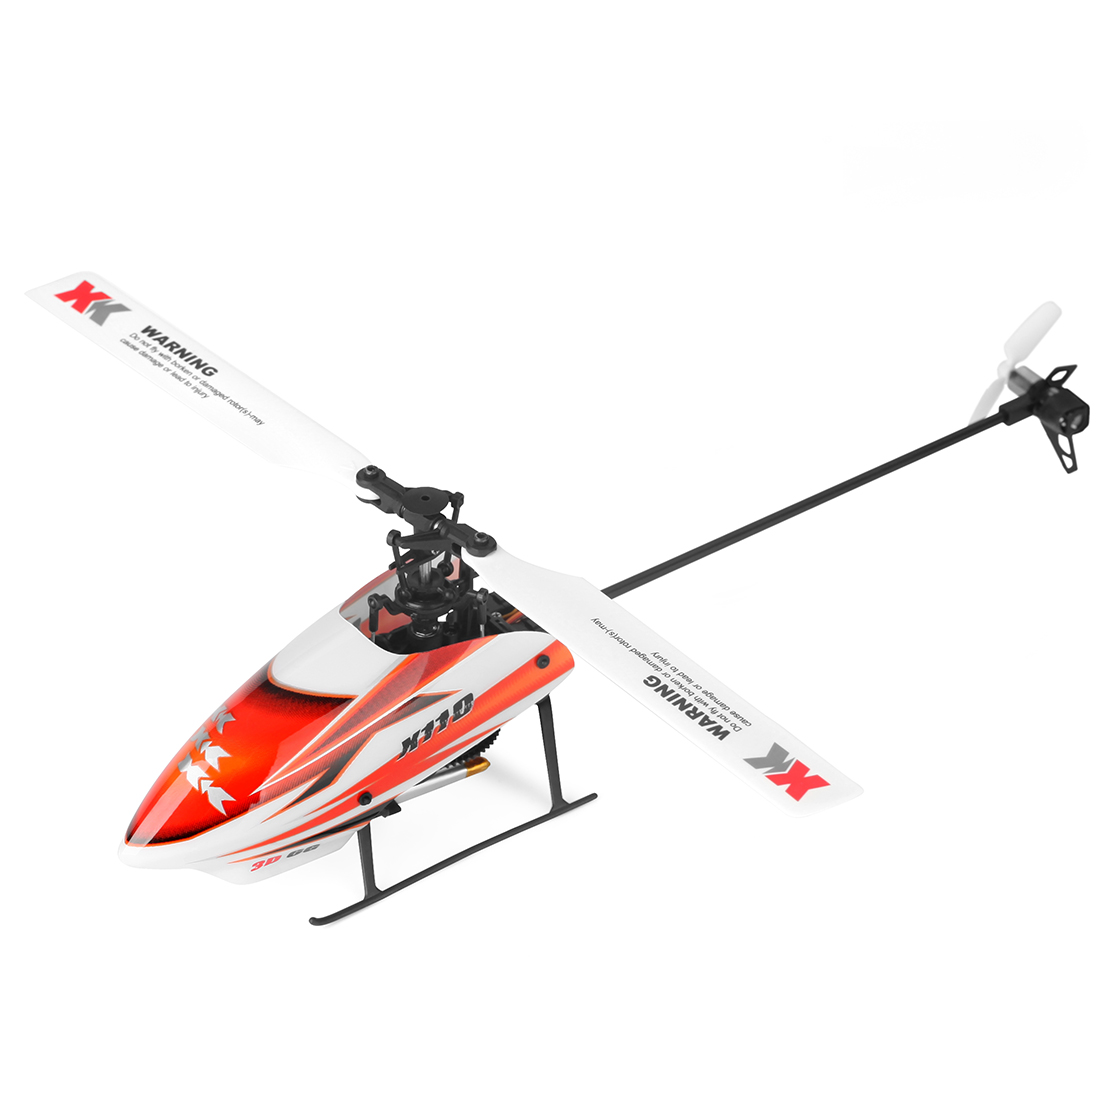 Surwish XK K110 2.4G 6CH Single-blade Brushless RC Helicopter Drone with 3D Upside Down Flight Stunt metal silver tail motor group for wltoys xk k110 rc drone helicopter parts